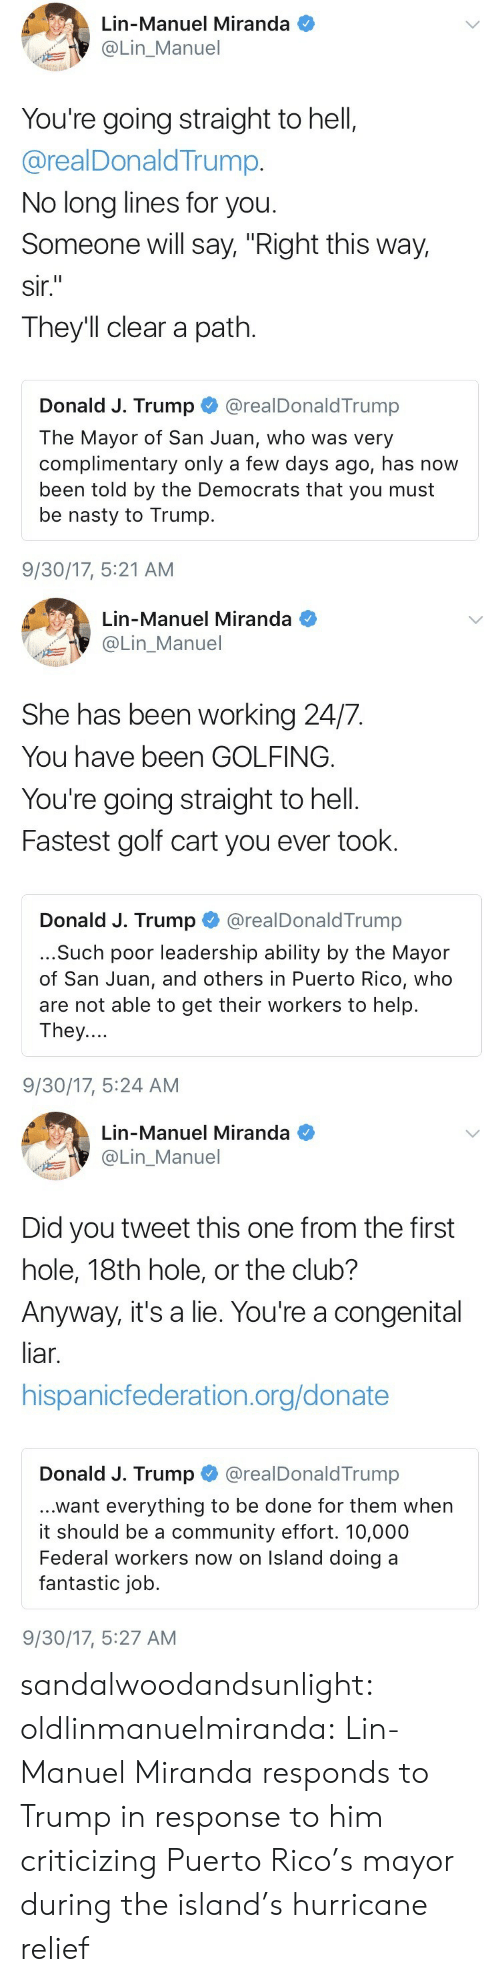 """golf cart: Lin-Manuel Miranda  @Lin_Manuel  You're going straight to hell,  @realDonaldTrump.  No long lines for you  Someone will say, """"Right this way,  sir.  They'll clear a path.  Donald J. Trump @realDonaldTrump  The Mayor of San Juan, who was very  complimentary only a few days ago, has now  been told by the Democrats that you must  be nasty to Trump.  9/30/17, 5:21 AM   Lin-Manuel Miranda  OLin_Manuel  She has been working 24/7.  You have been GOLFING.  You're going straight to hell.  Fastest golf cart you ever took.  Donald J. Trump@realDonaldTrump  ...Such poor leadership ability by the Mayor  of San Juan, and others in Puerto Rico, who  are not able to get their workers to help.  They....  9/30/17, 5:24 AM   Lin-Manuel Miranda  Lin_Manuel  Did you tweet this one from the first  hole, 18th hole, or the club?  Anyway, it's a lie. You're a congenital  liar.  hispanicfederation.org/donate  Donald J. Trump @realDonaldTrump  ...want everything to be done for them when  it should be a community effort. 10,000  Federal workers now on Island doing a  fantastic job.  9/30/17, 5:27 AM sandalwoodandsunlight:  oldlinmanuelmiranda: Lin-Manuel Miranda responds to Trump in response to him criticizing Puerto Rico's mayor during the island's hurricane relief"""